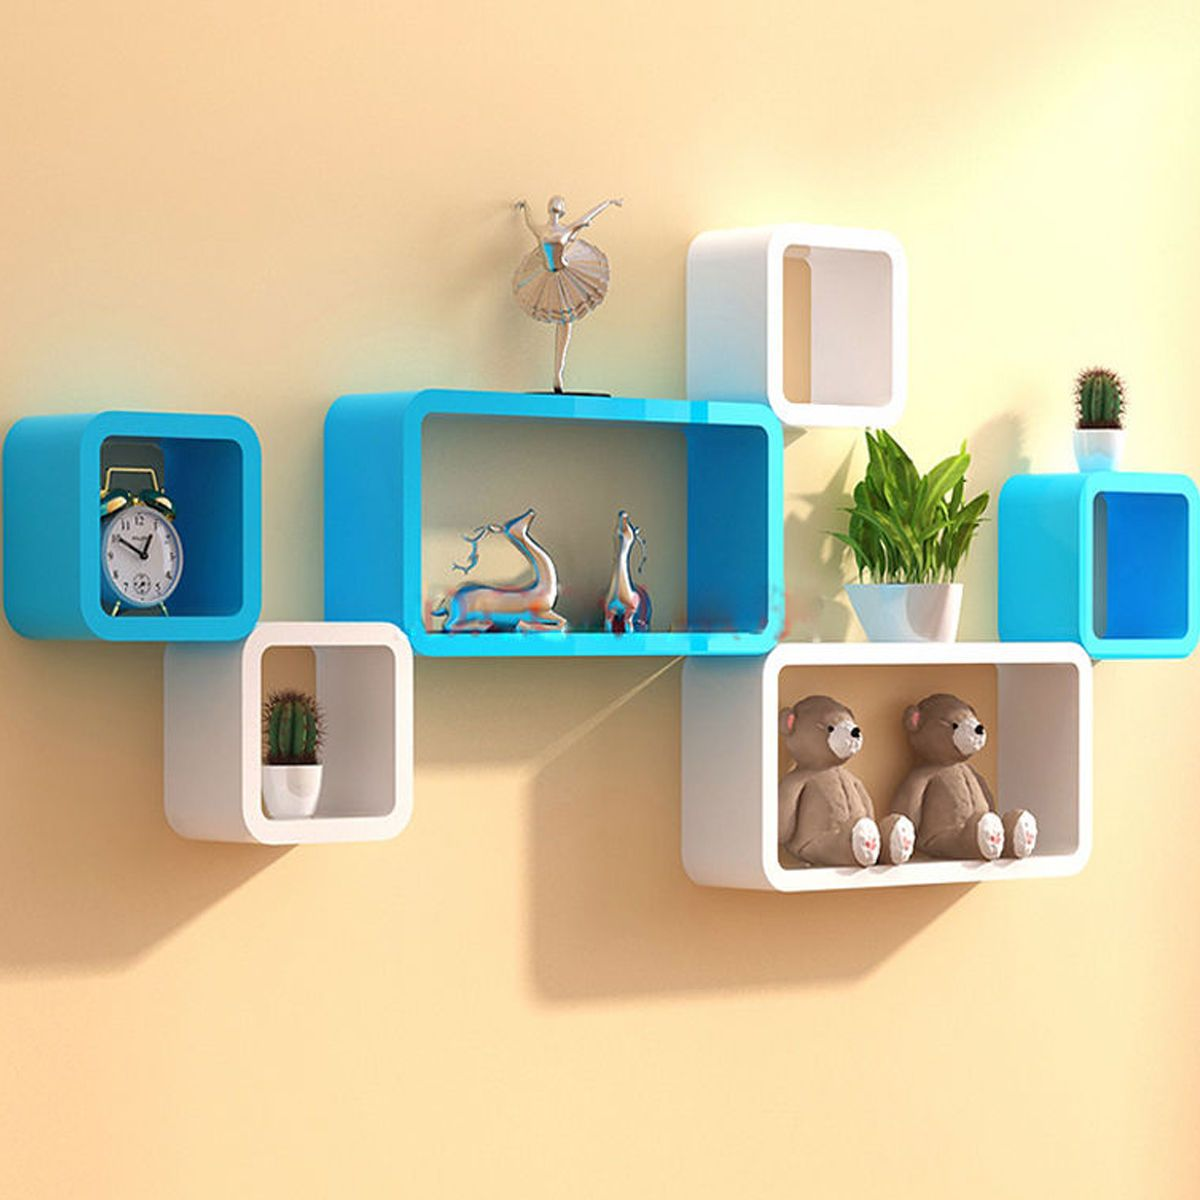 wall shelves cube shelf white wooden book storage home decor ledge floating organizer fds furniture diy children display unit room essentials bookcase instructions chesterfield